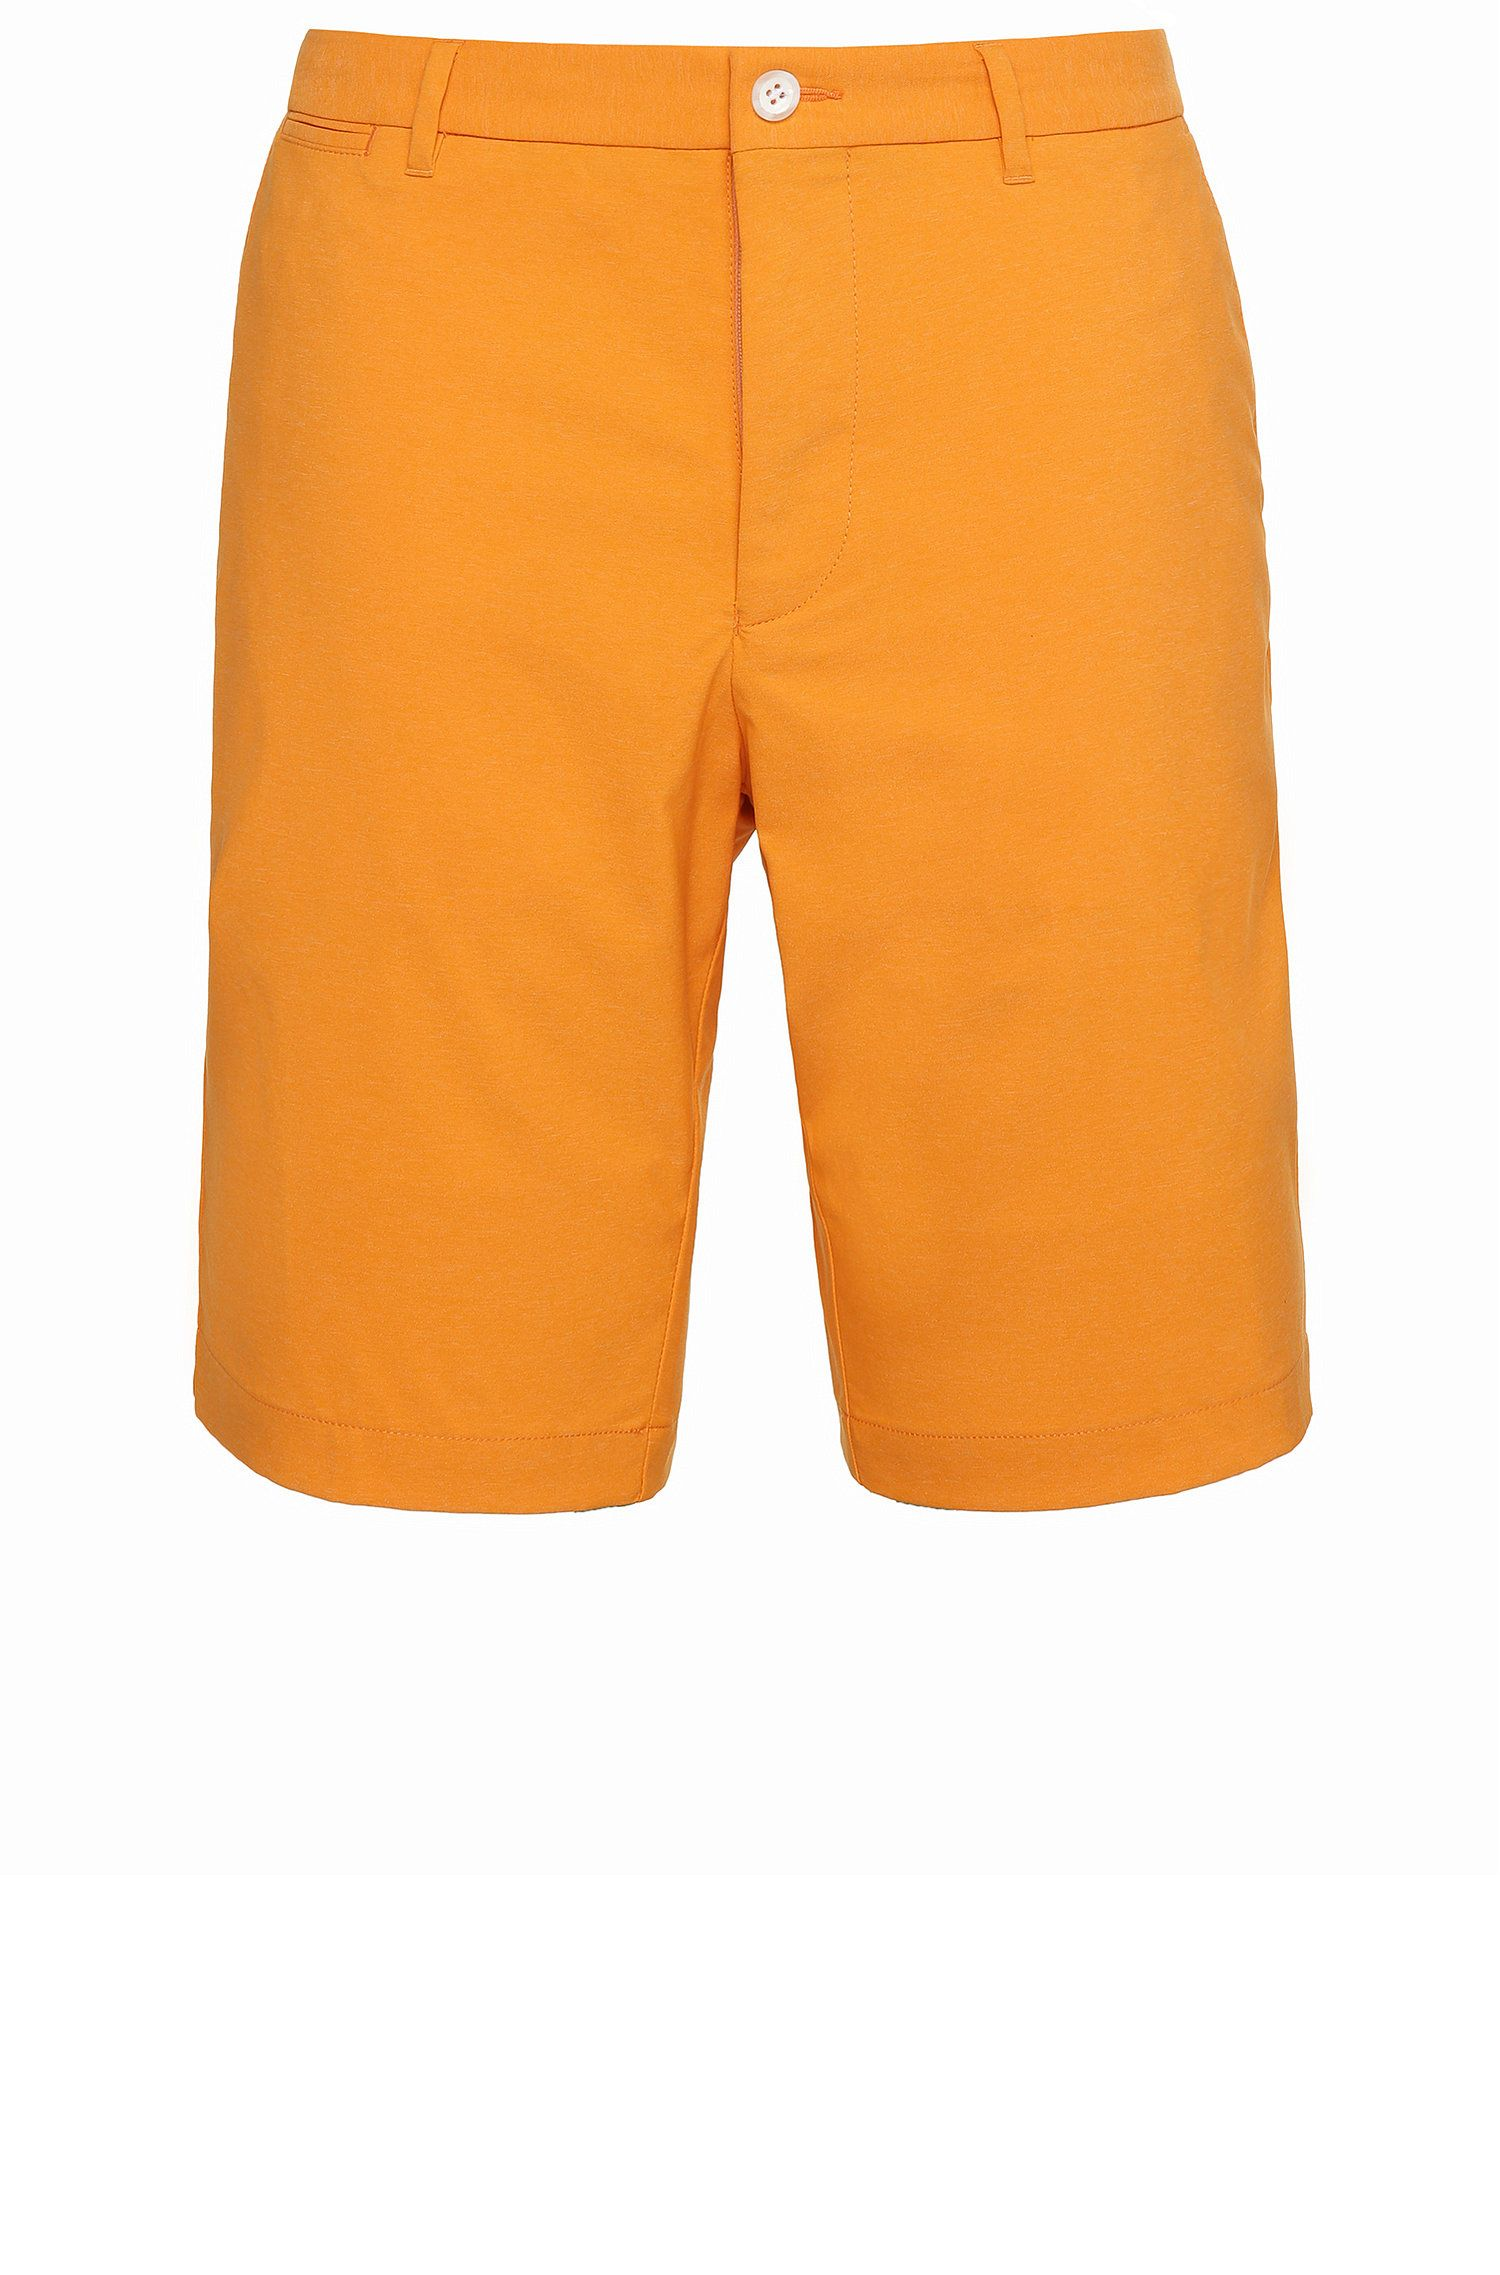 'Hayler Slim' | Slim Fit, Coolmax High Performance Golf Shorts